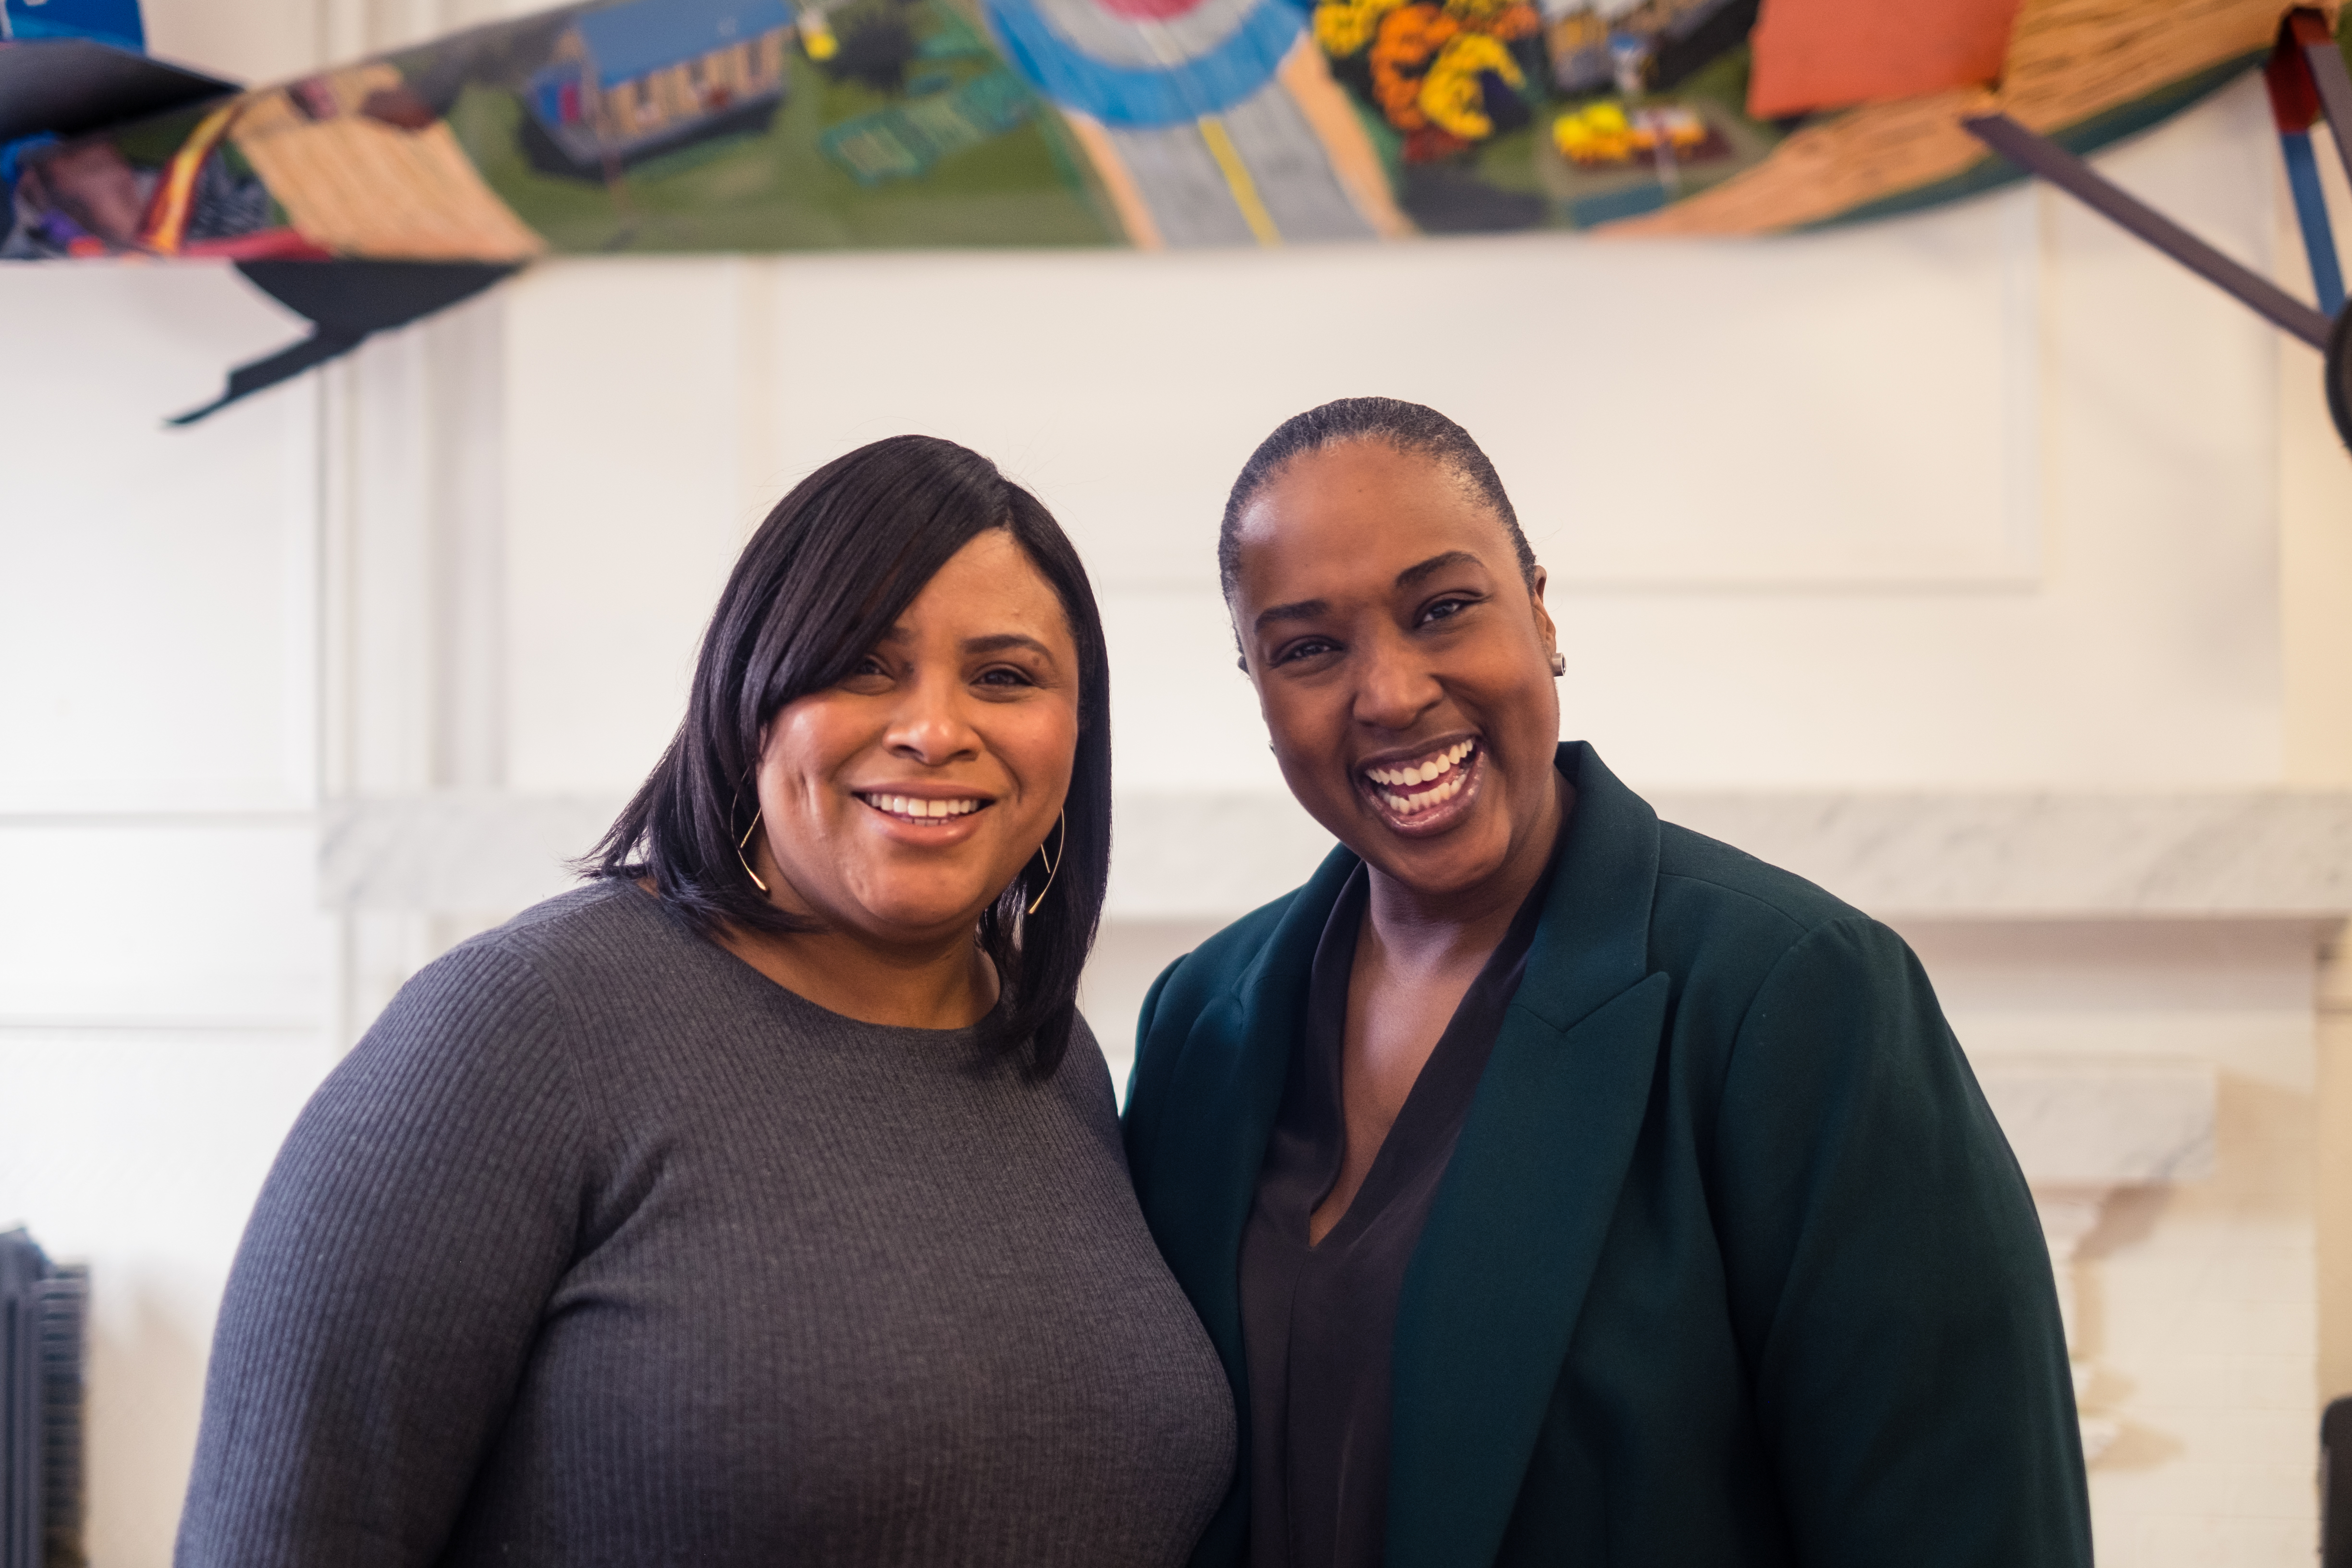 Jill Andrew and Aisha Fairclough portrait. Both of them smiling.